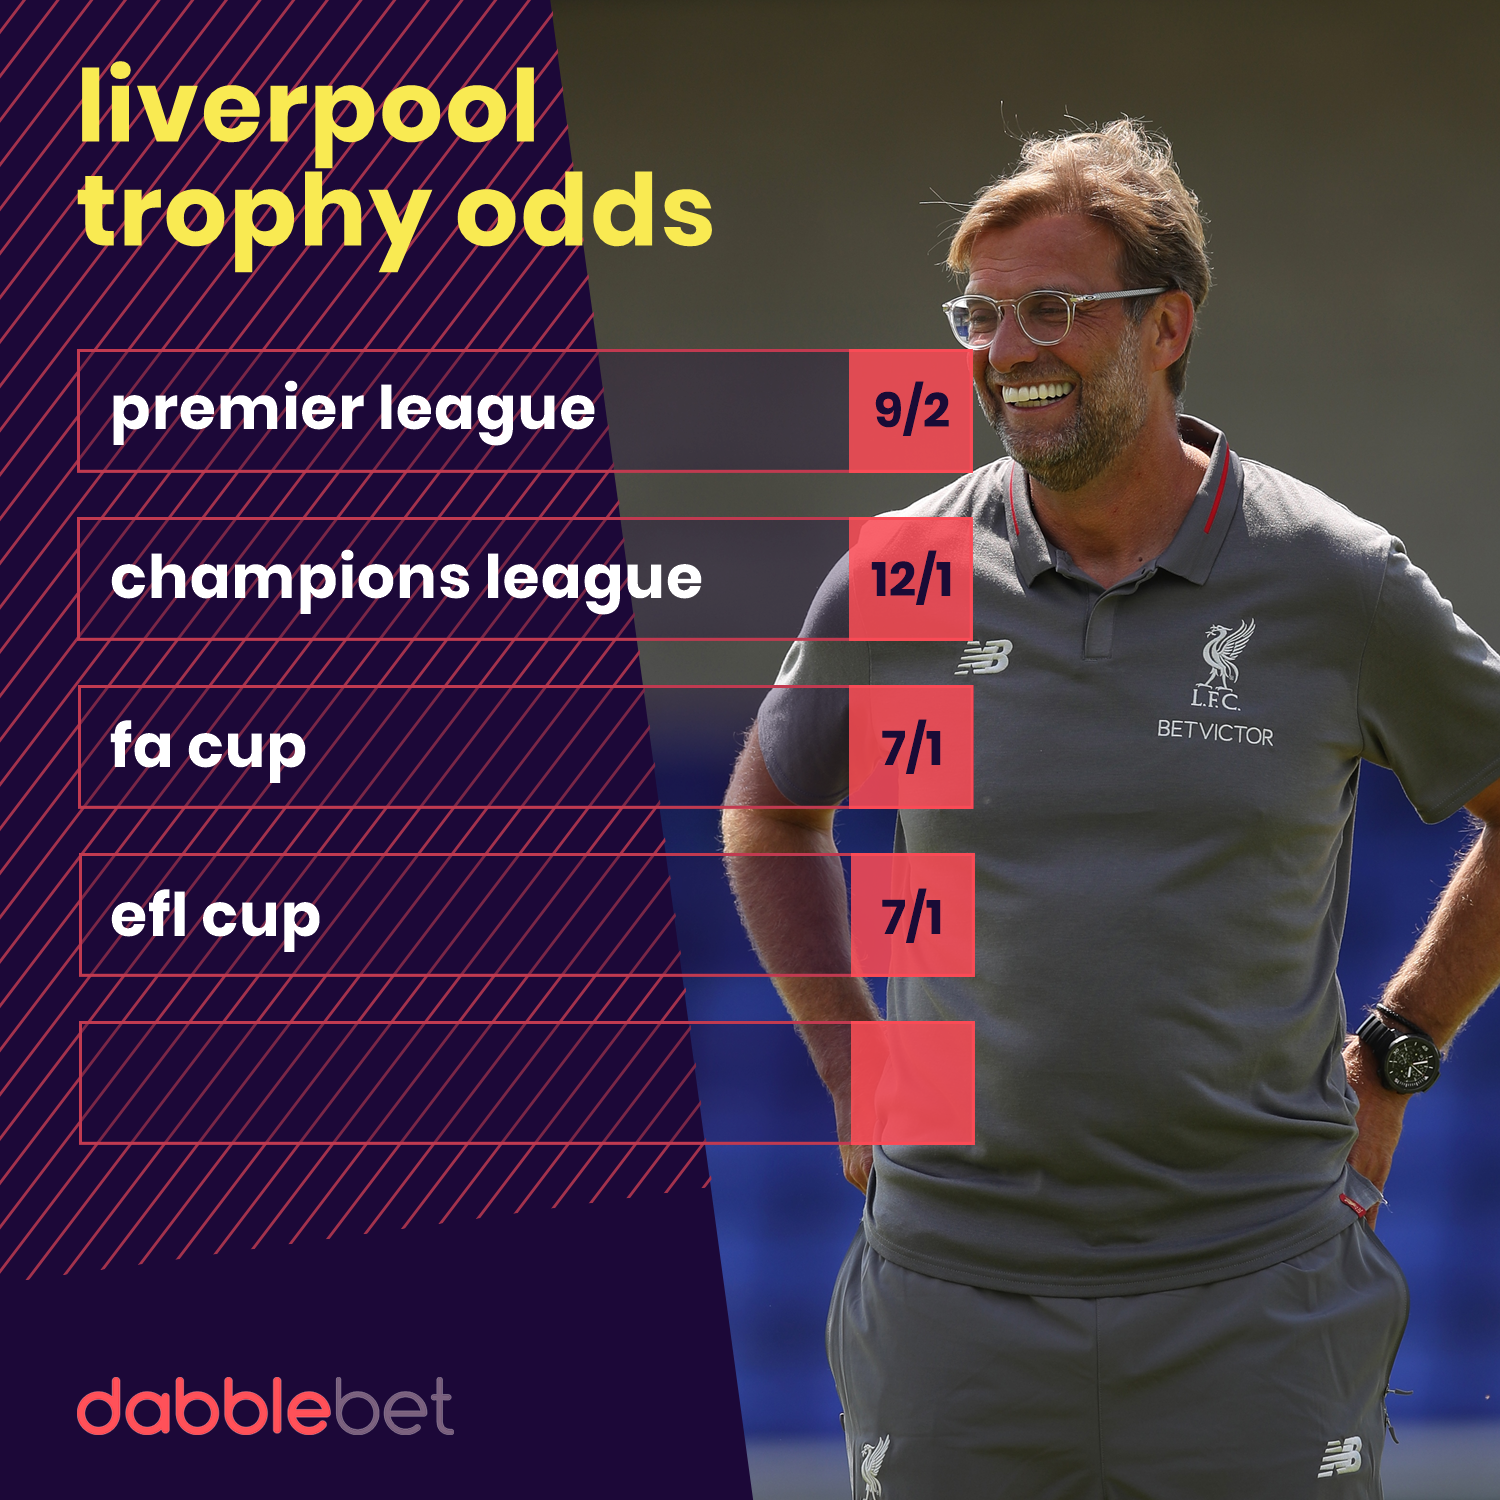 Liverpool trophy odds 1907 graphic